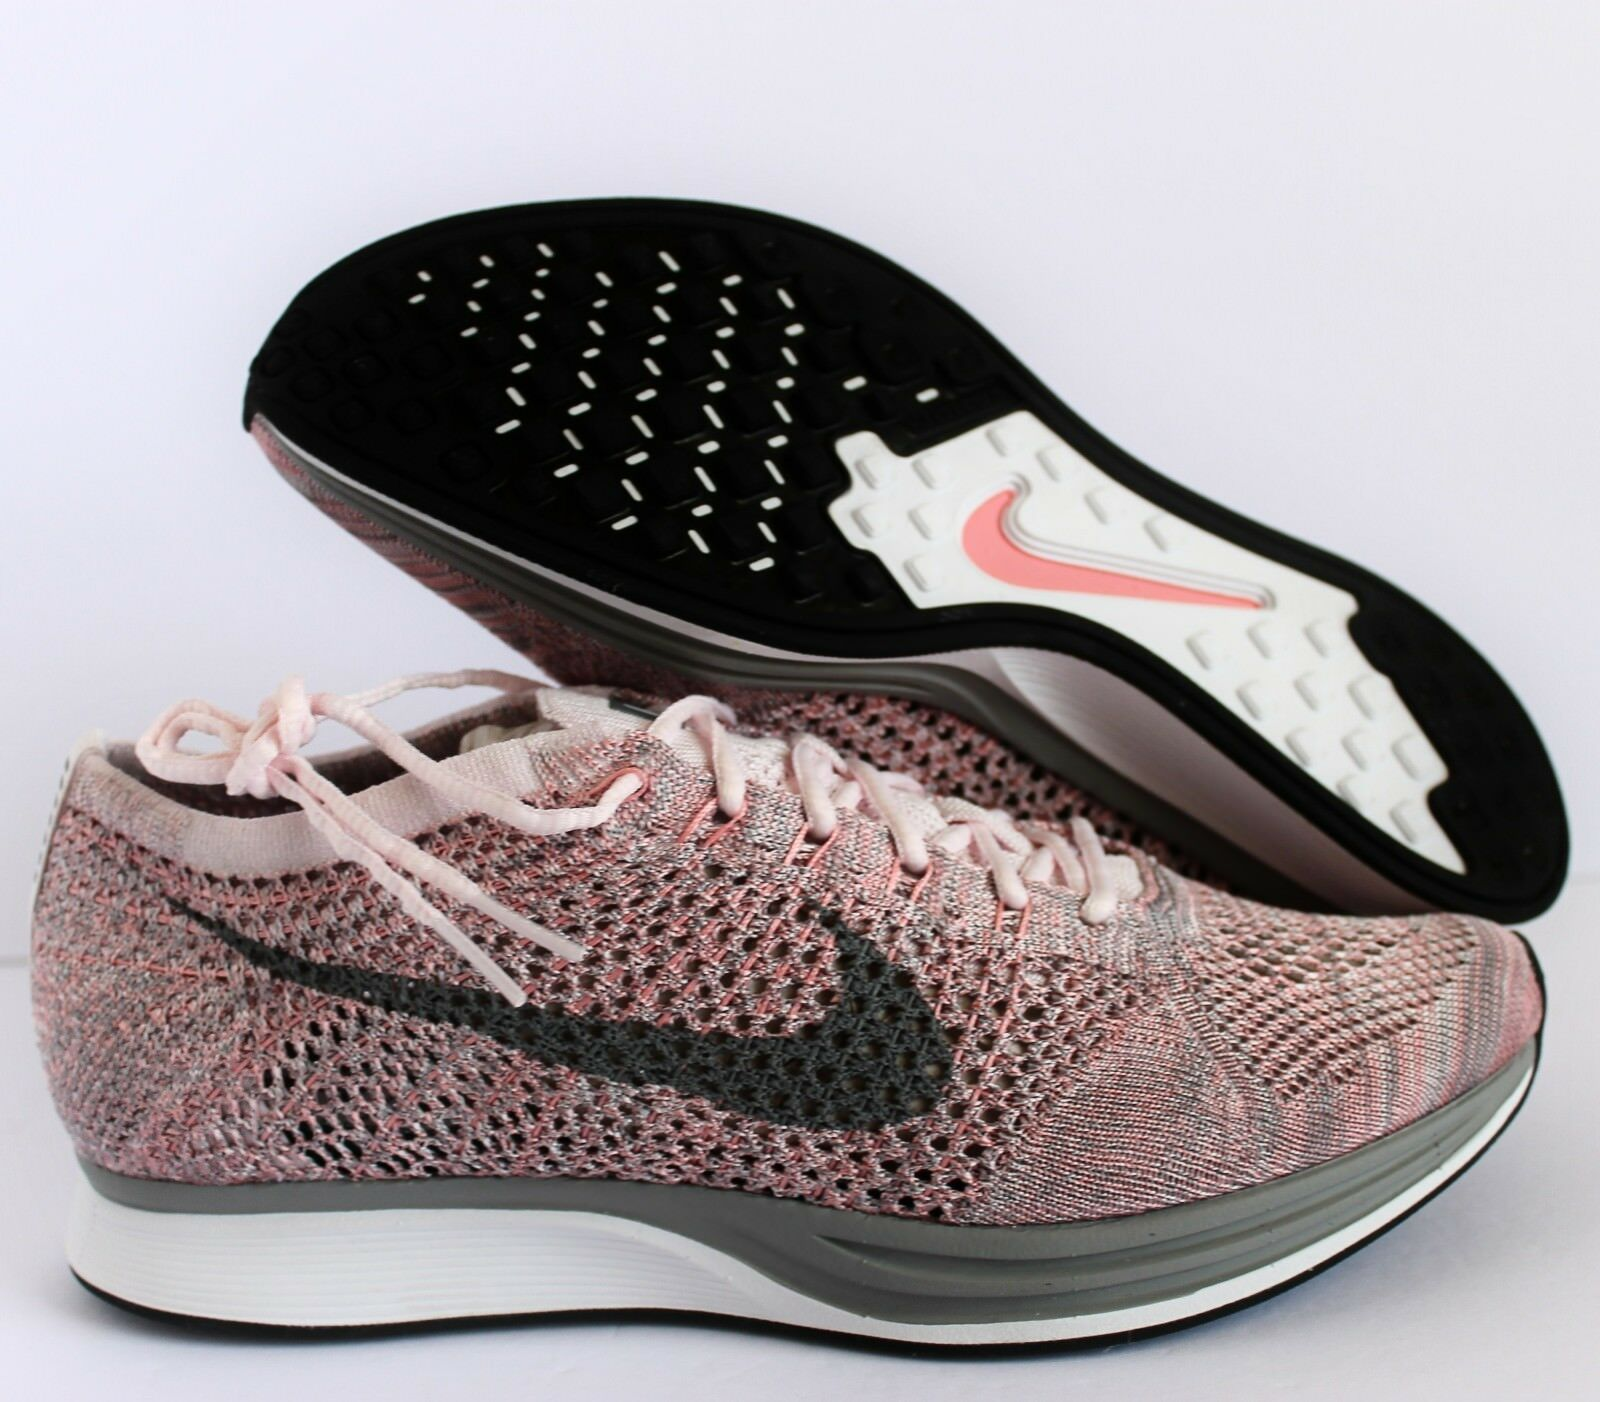 NIKE FLYKNIT RACER PEARL PINK-COOL GREY MENS Price reduction Seasonal clearance sale